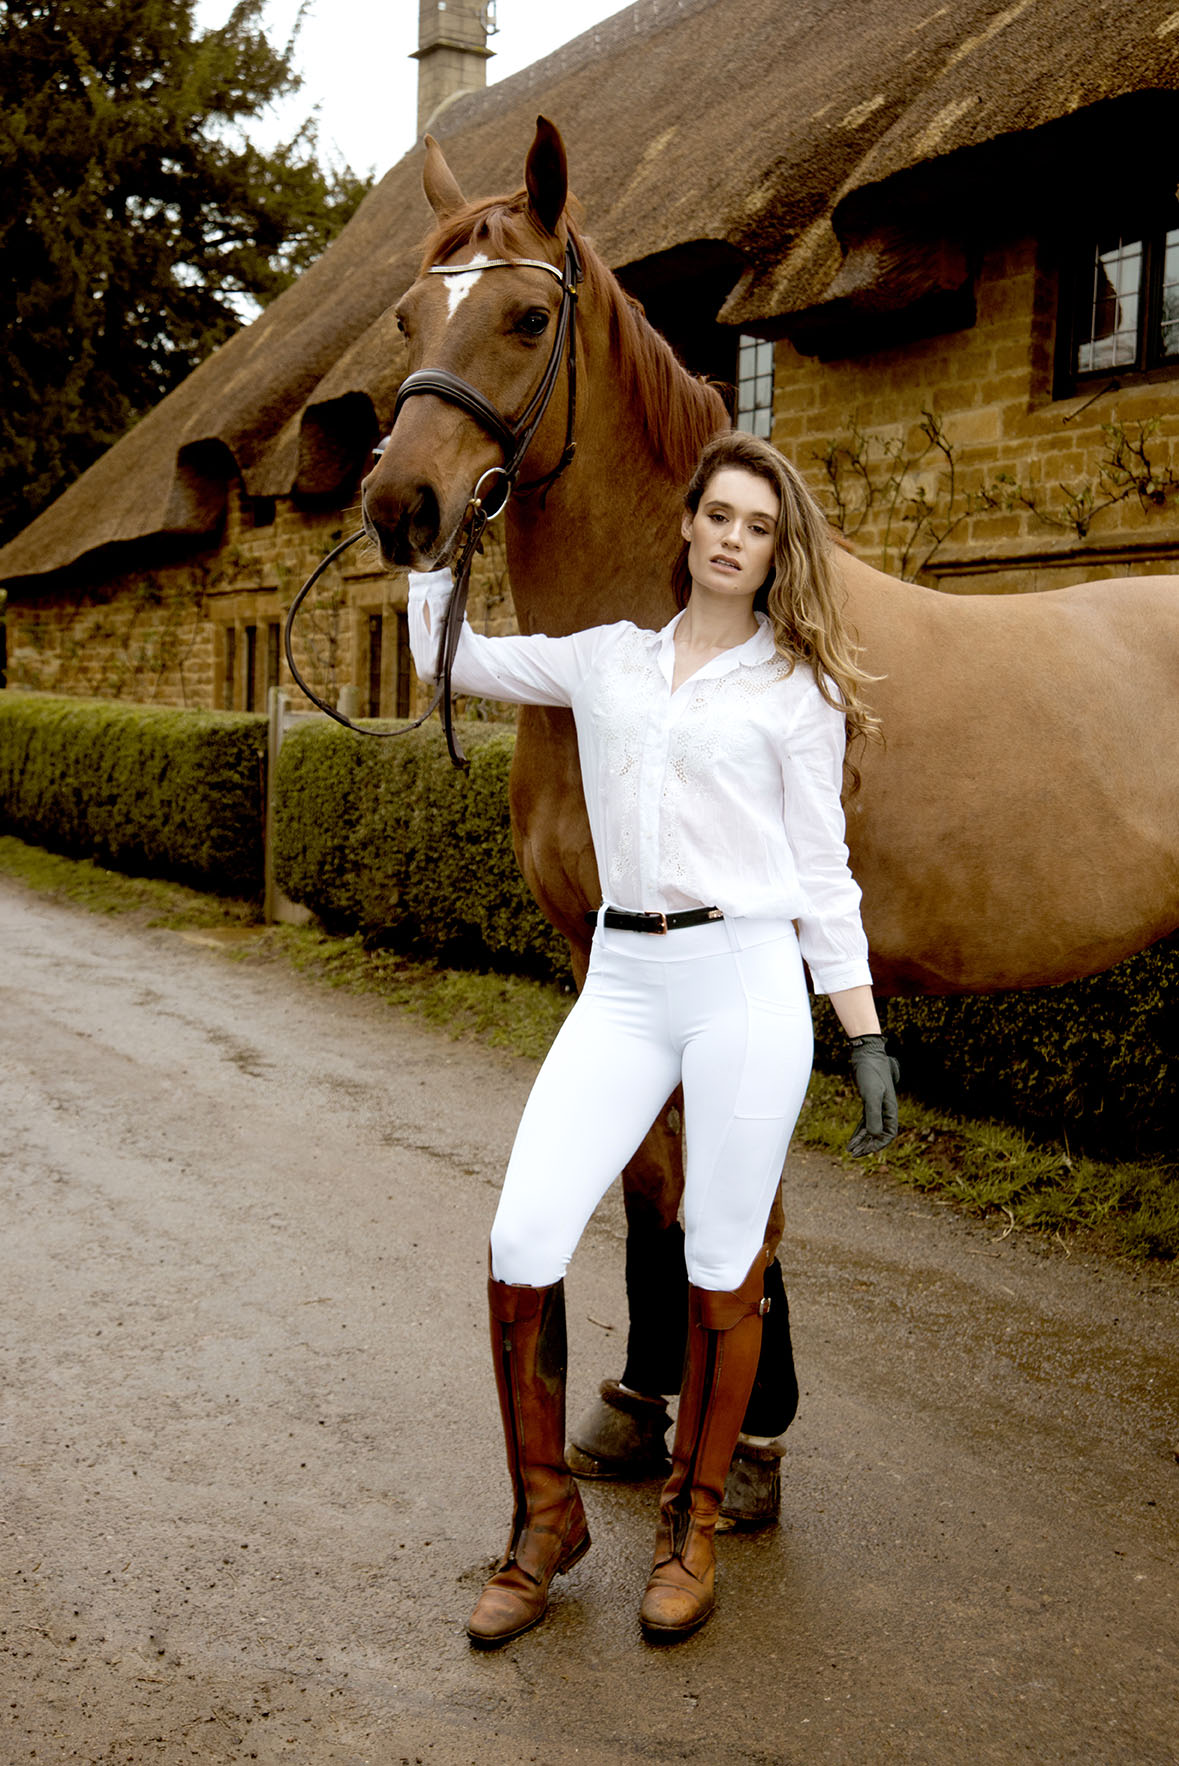 Cotswold Equestrian Fashion Photography With Horses Modelled by Laura Thyer by Grace Delnevo Cotswold Fashion Photographer For Luxe Equine